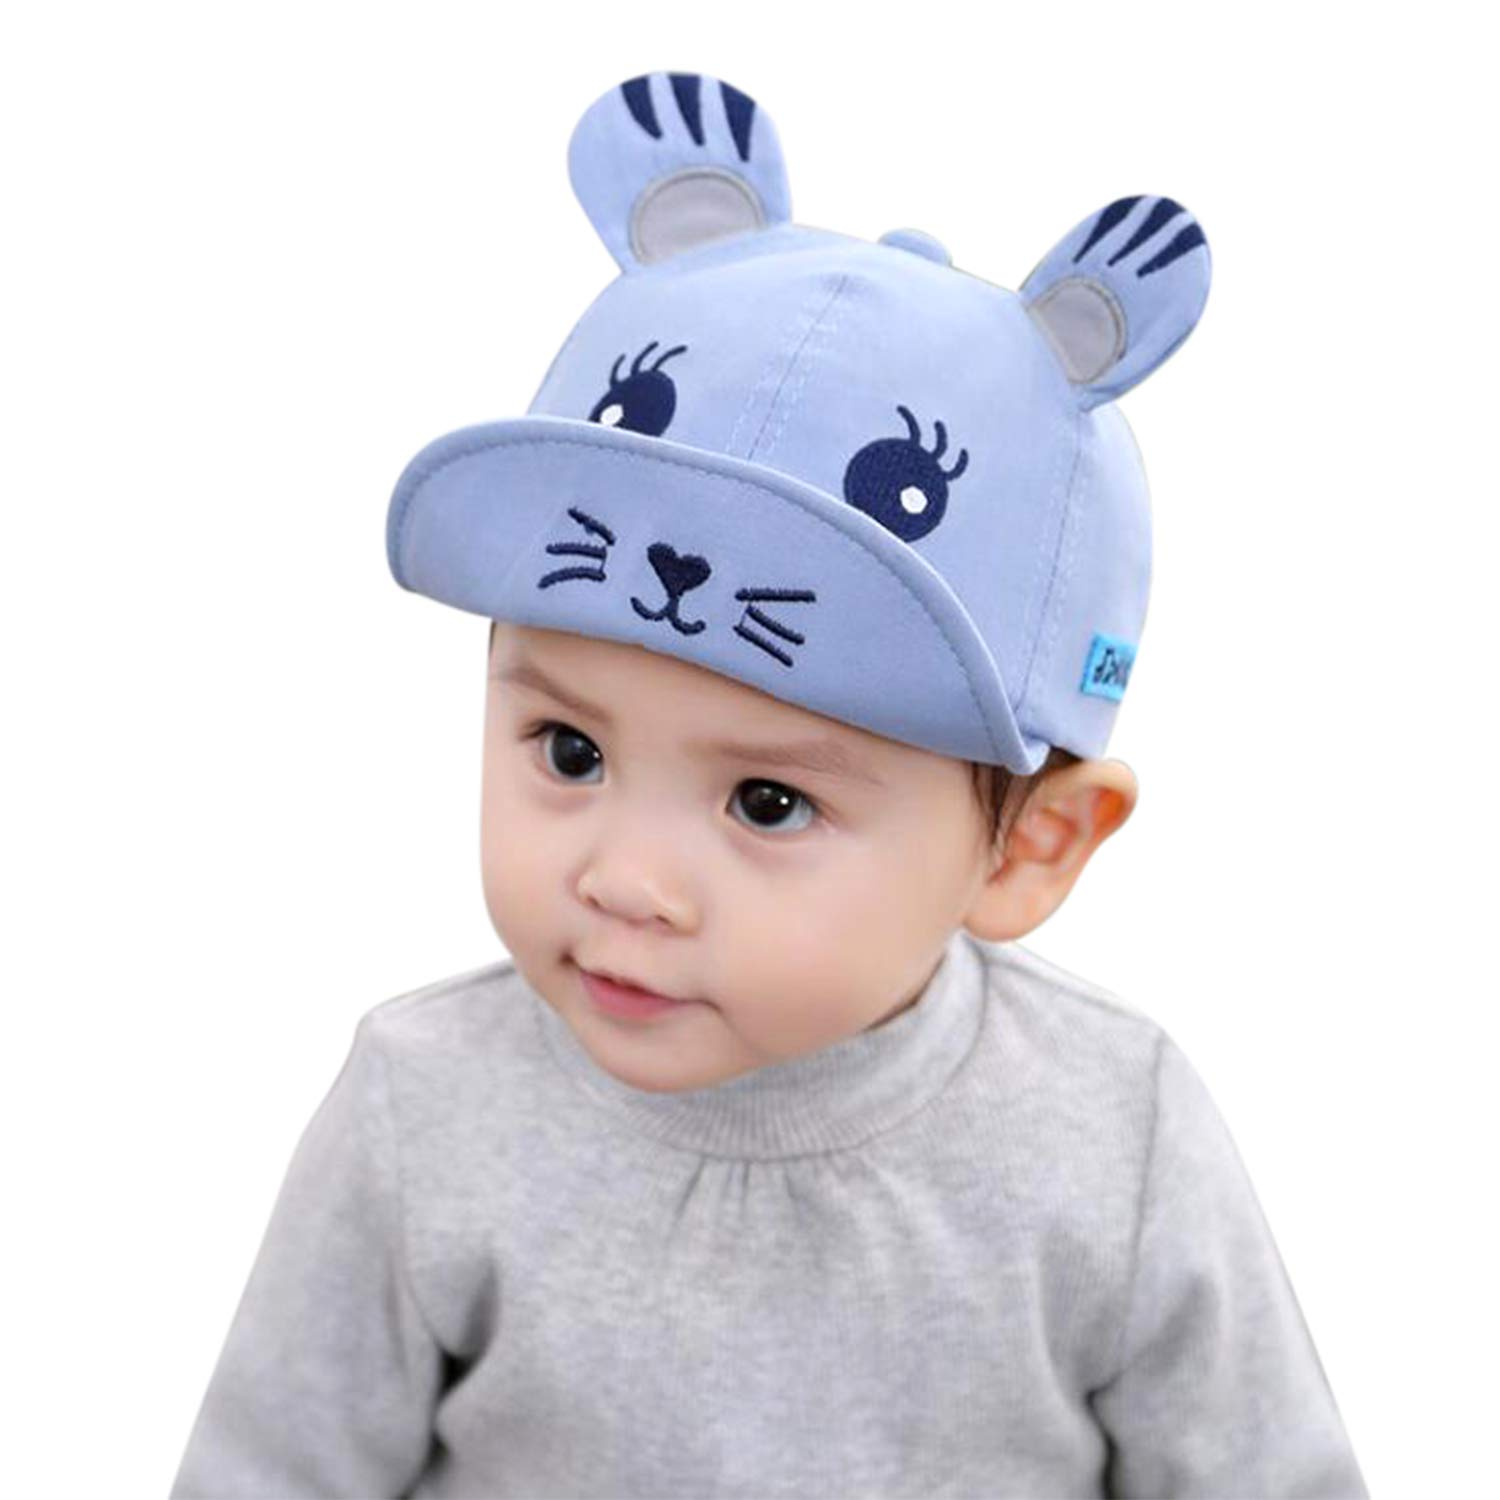 3e2769dafbfd Amazon.com: LONTG Cute Newborn Infant Baseball Cap Cotton Peaked Cap Baby  Boy Girl Summer Sunhat Bonnet Embroidered Breathable Adjustable for Baby  Toddlers ...